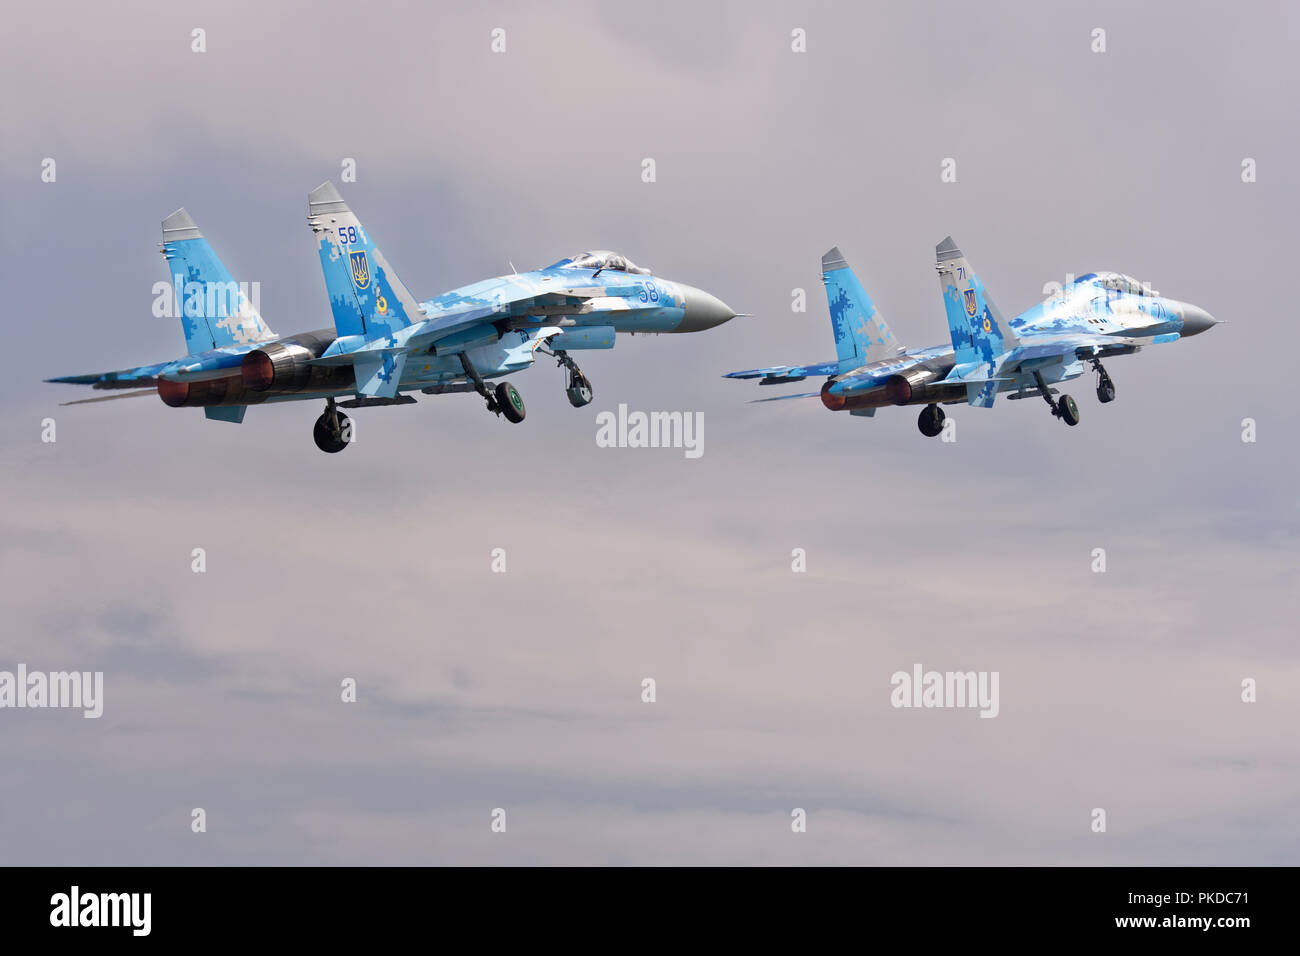 Two Ukrainian Air Force Sukhoi SU-27 air superiority jet fighters depart RAF Fairford after attending the Royal International Air Tattoo - Stock Image